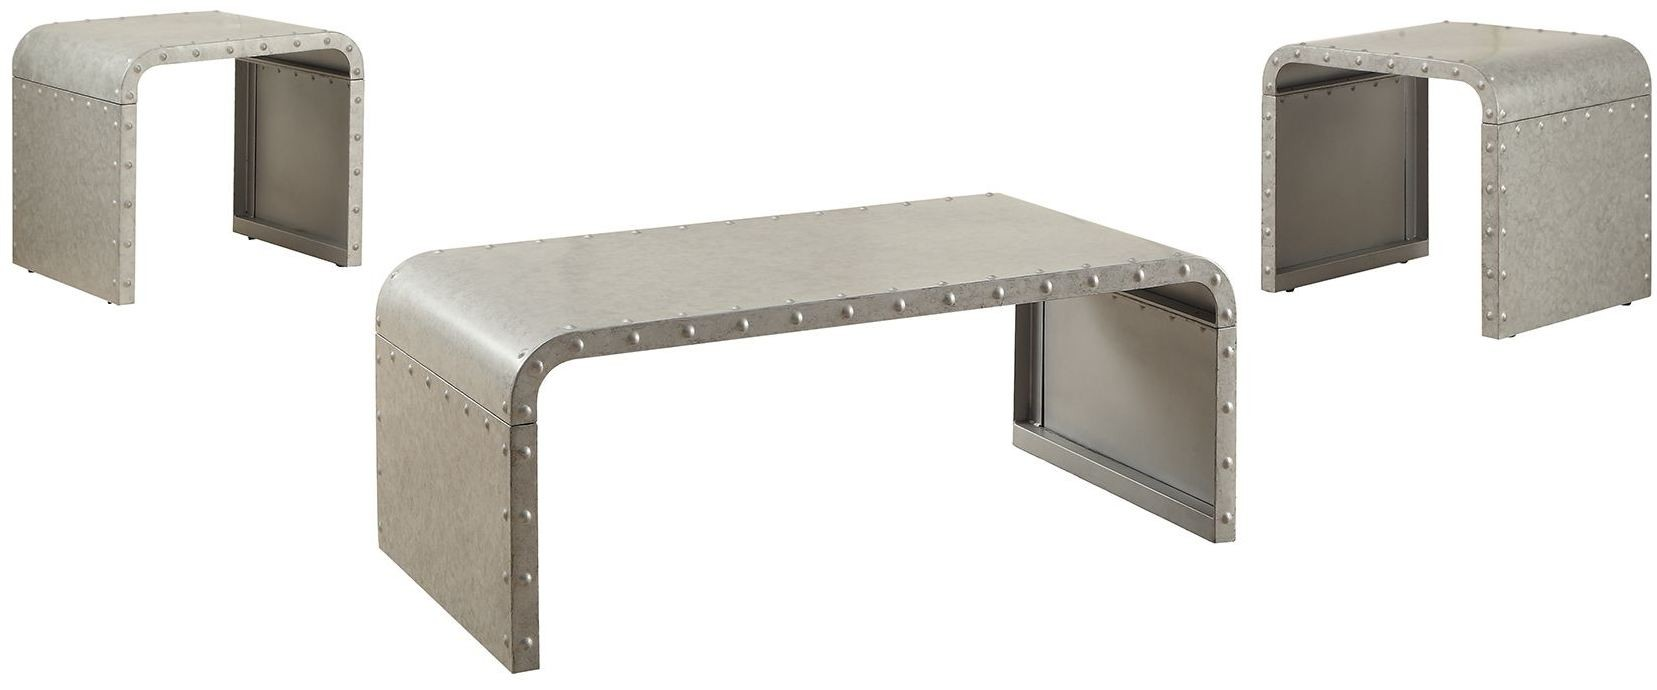 Galvanized Metal Coffee Table From Coaster